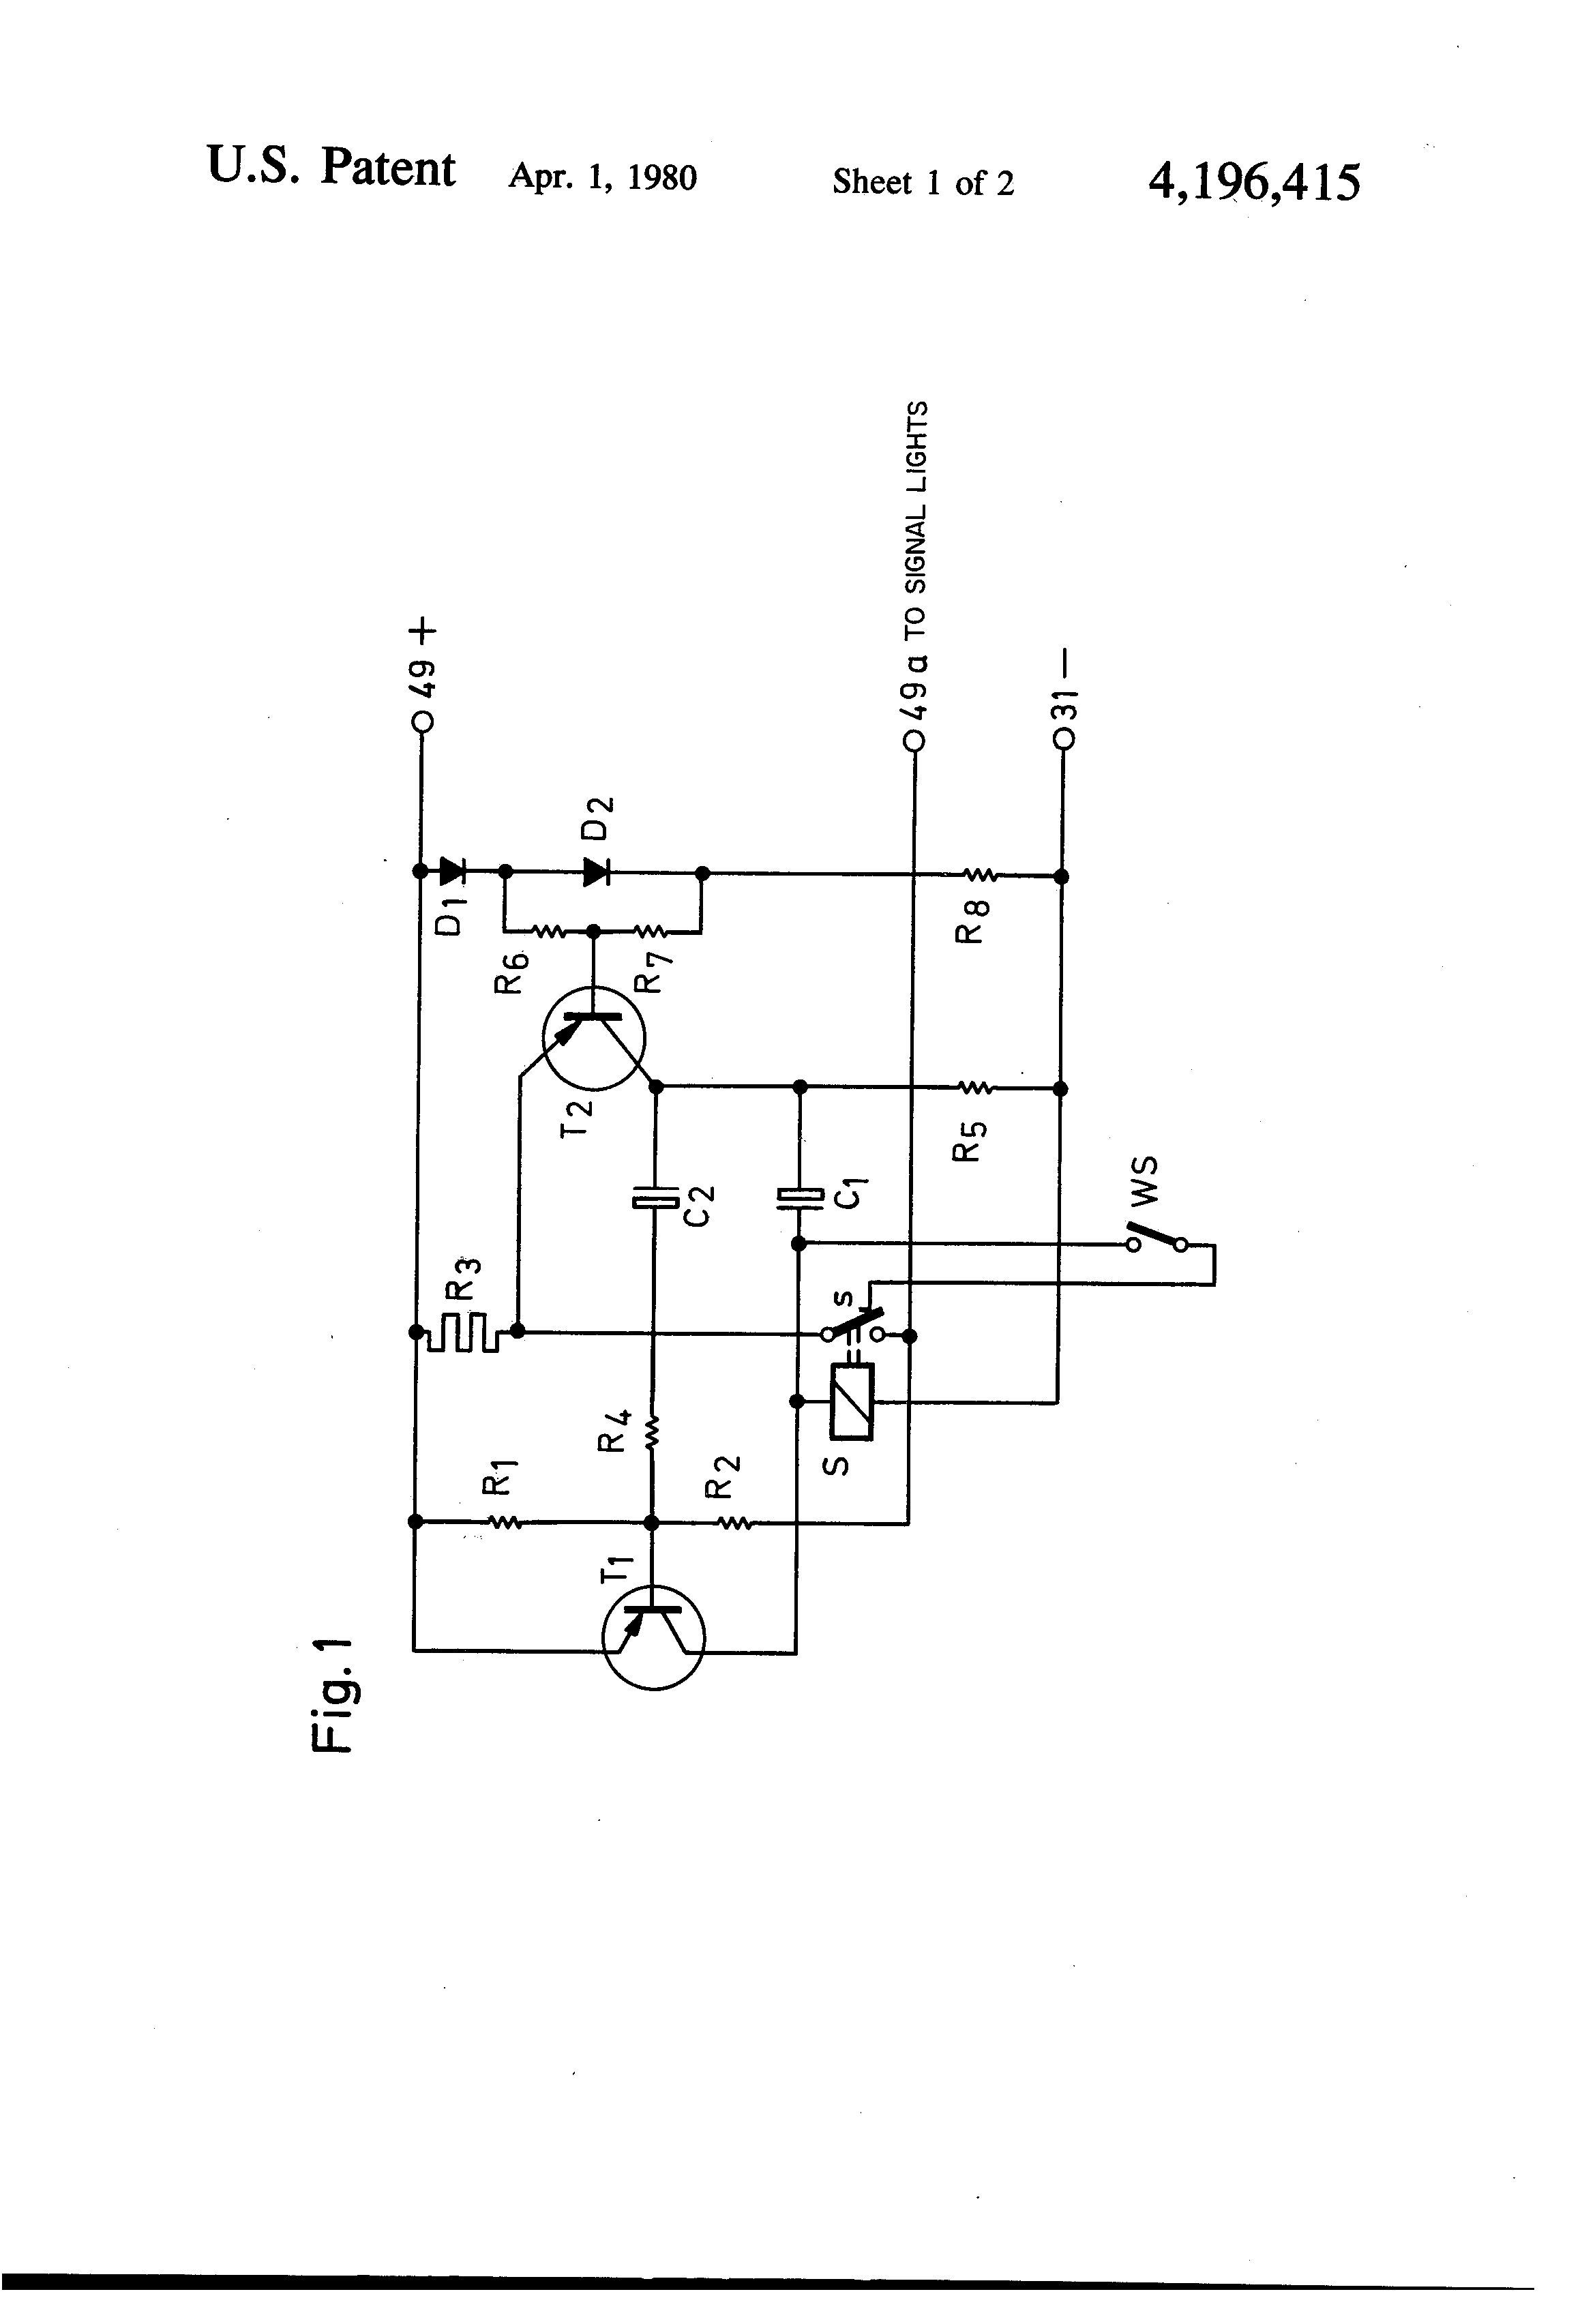 audew 2 pin flasher relay wiring diagram how to home electrical diagrams patent us4196415 automotive turn signal unit